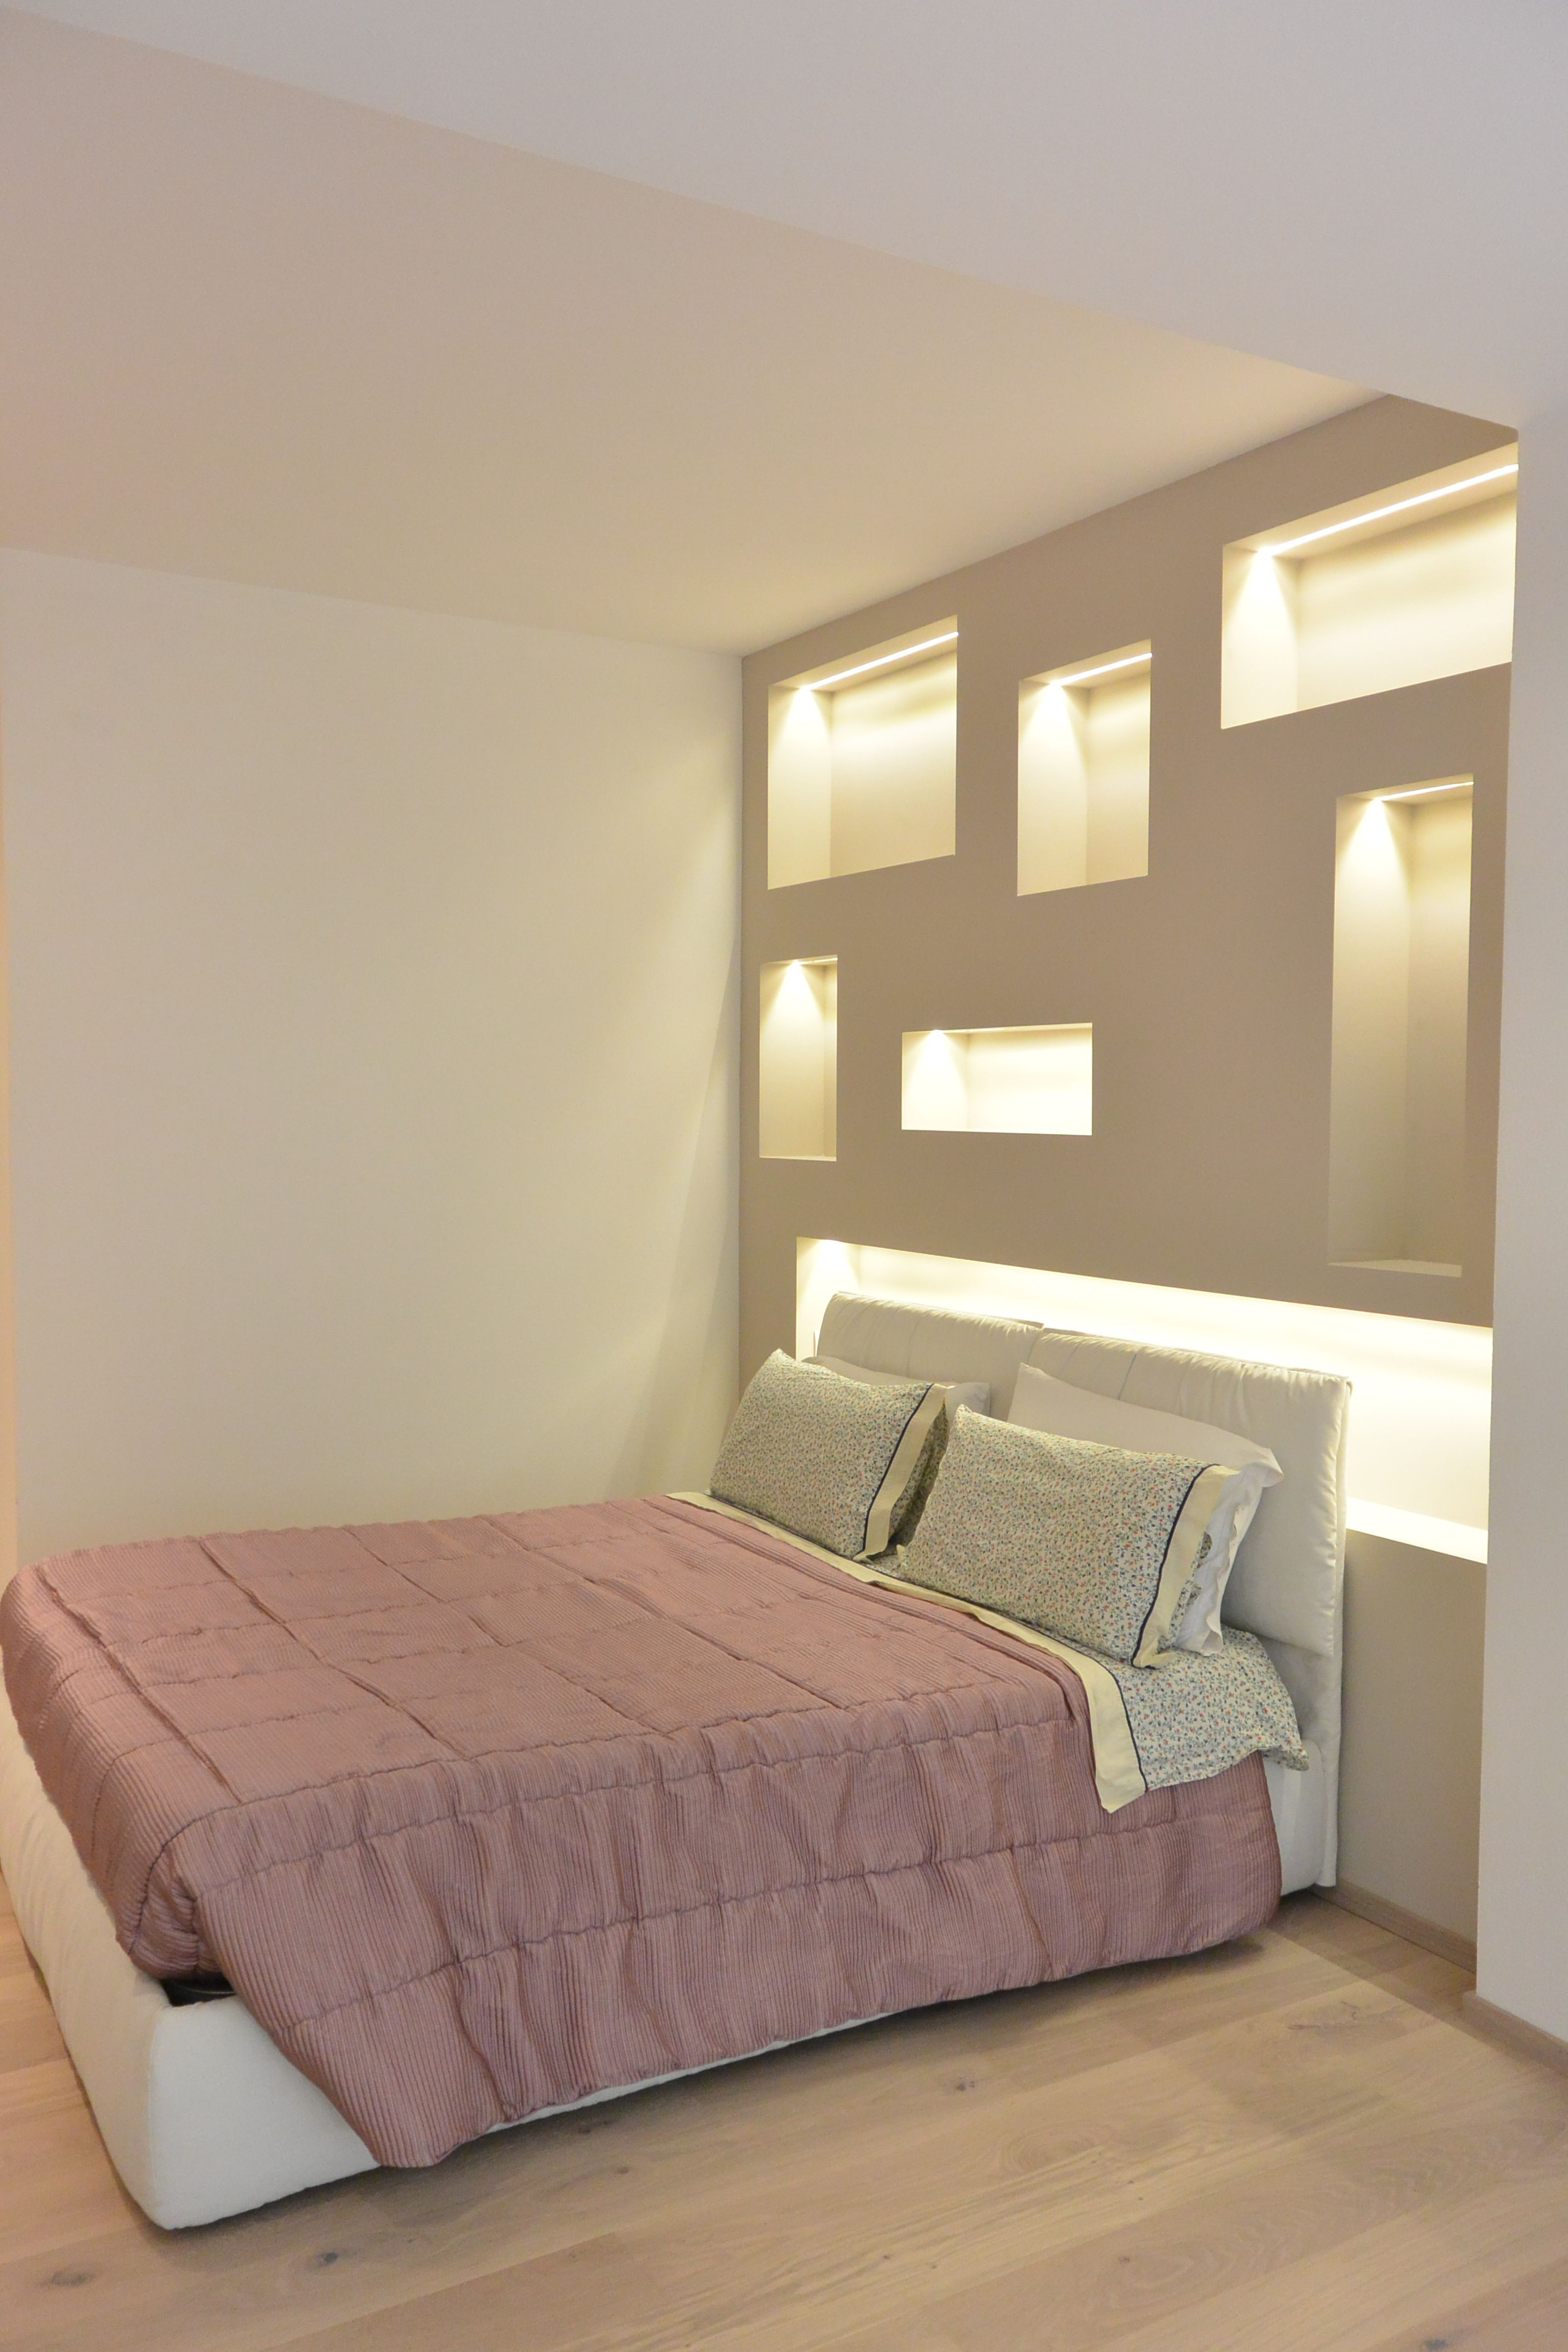 Browse our big option of top quality bedroom furnishings at value city furnishings bedroomfurniturewhitegloss